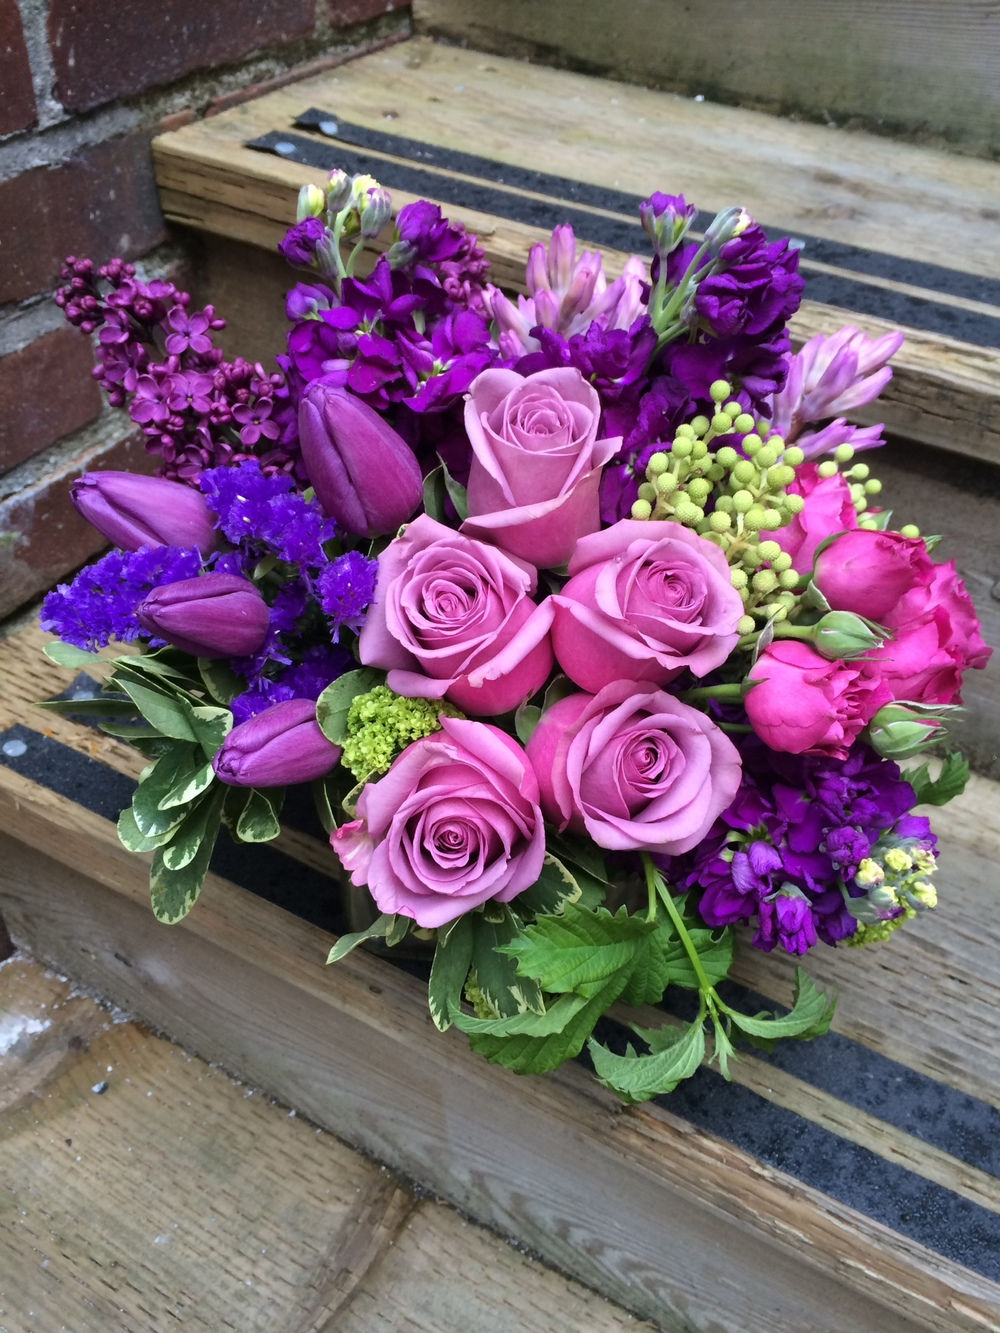 22. Compact Lush Purple with Tulip Bouquet